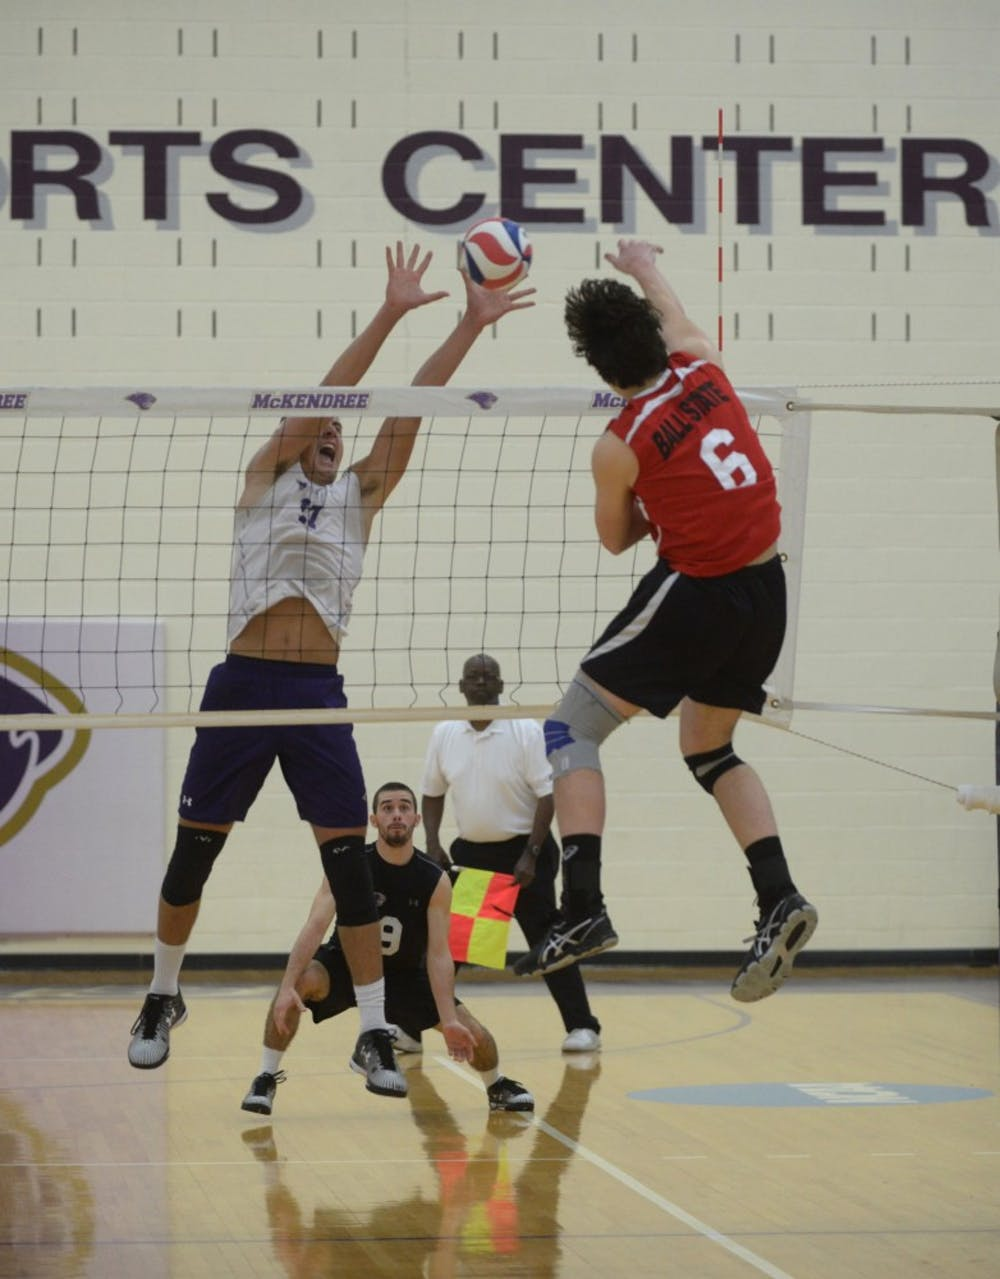 <p>The&nbsp;Ball State Men's Volleyball team traveled to McKendree University on Feb. 5in Lebanon, IL. The Cardinals won in five games, after coming back from a two game deficit. DN PHOTO ALLISON COFFIN</p>